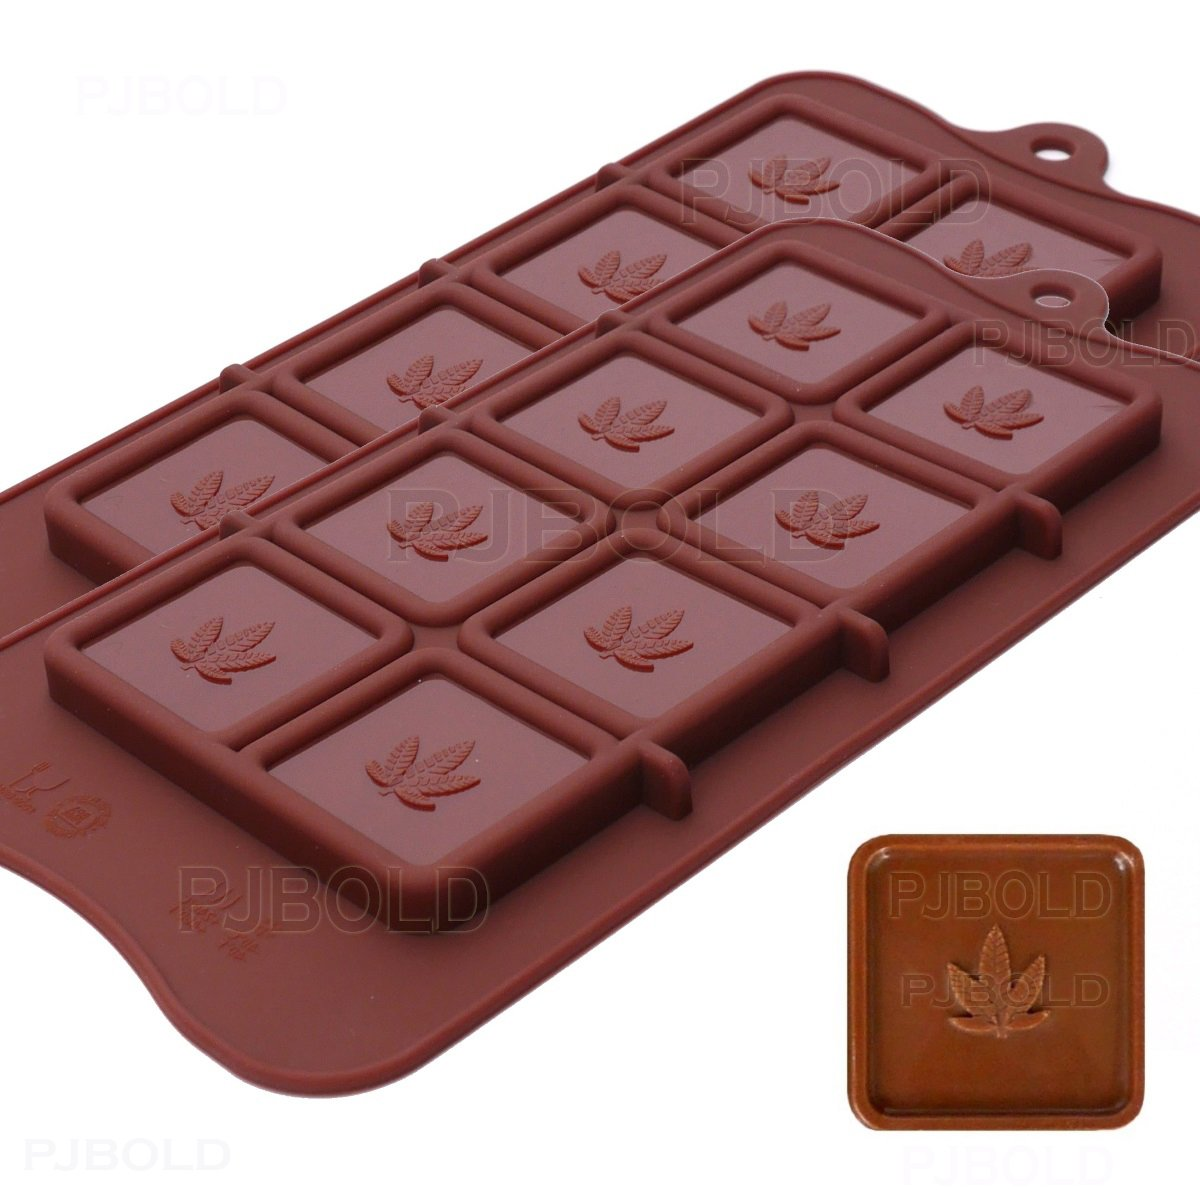 Marijuana Leaf Chocolate Bar Silicone Candy Mold Trays, 2 Pack PJ Bold Q1043